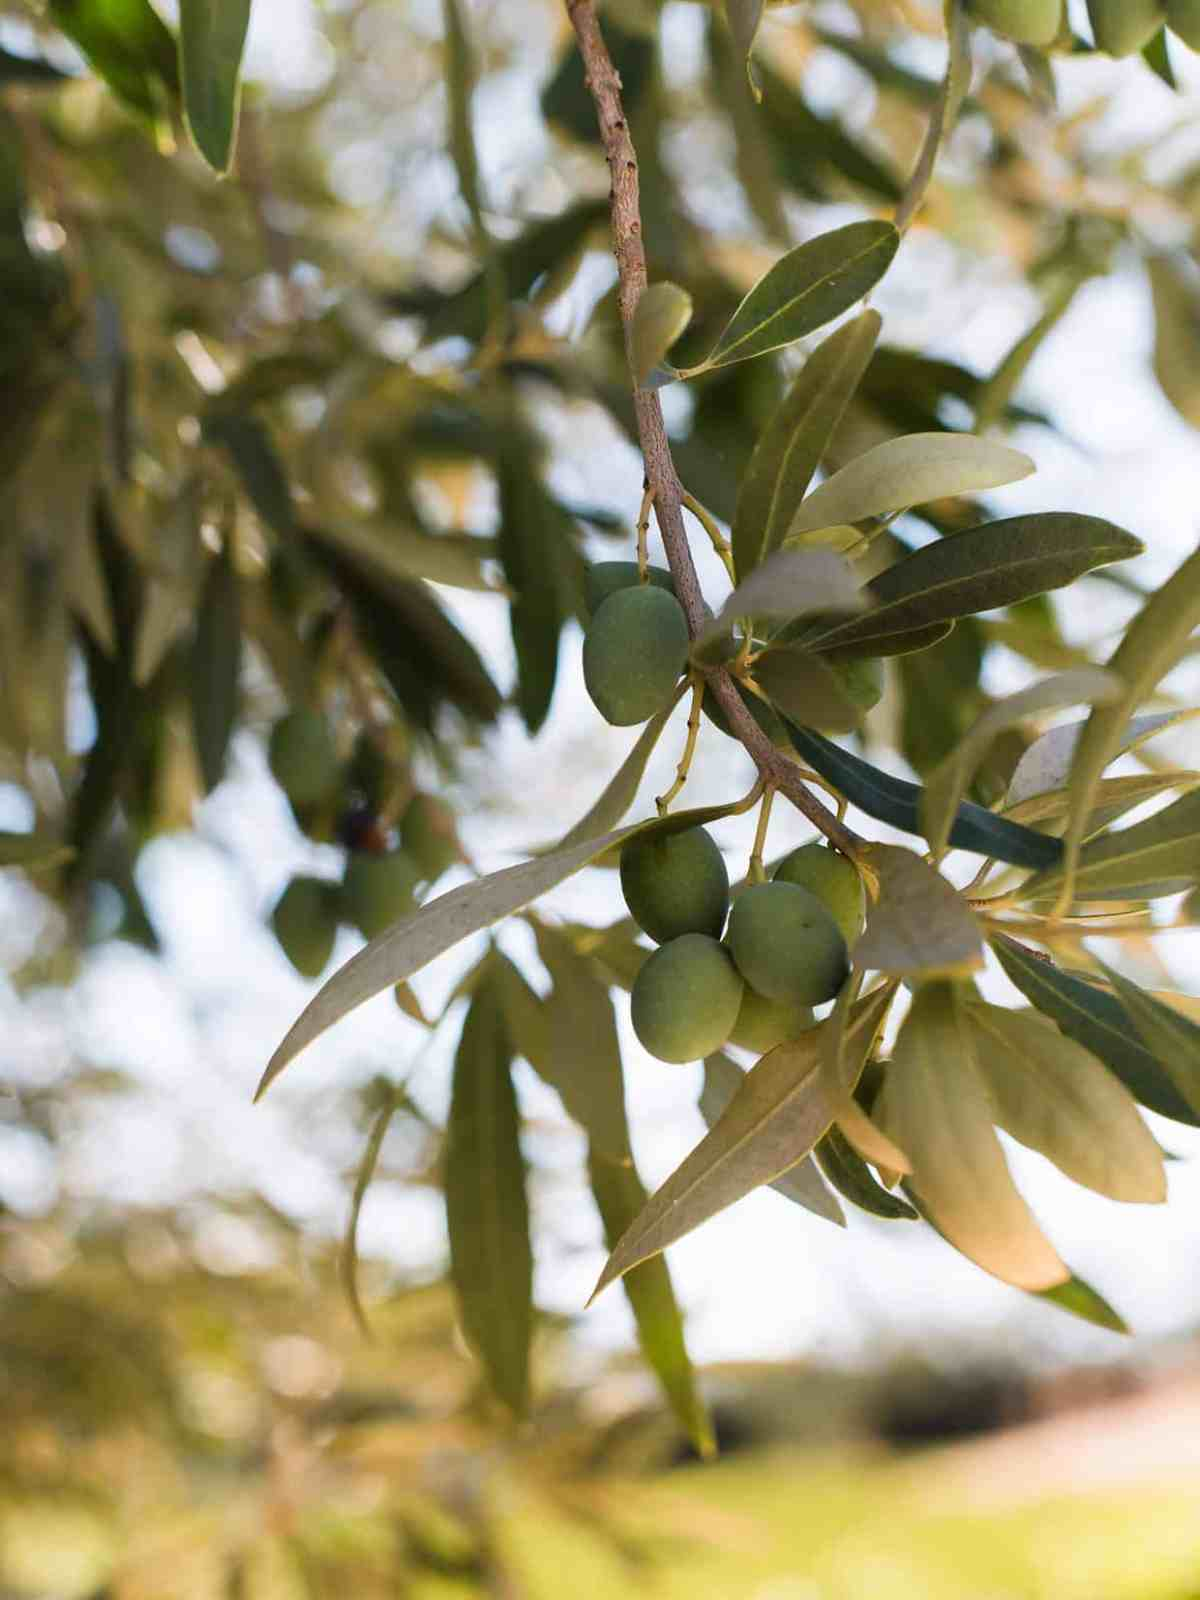 Close up of olives growing on a tree branch.